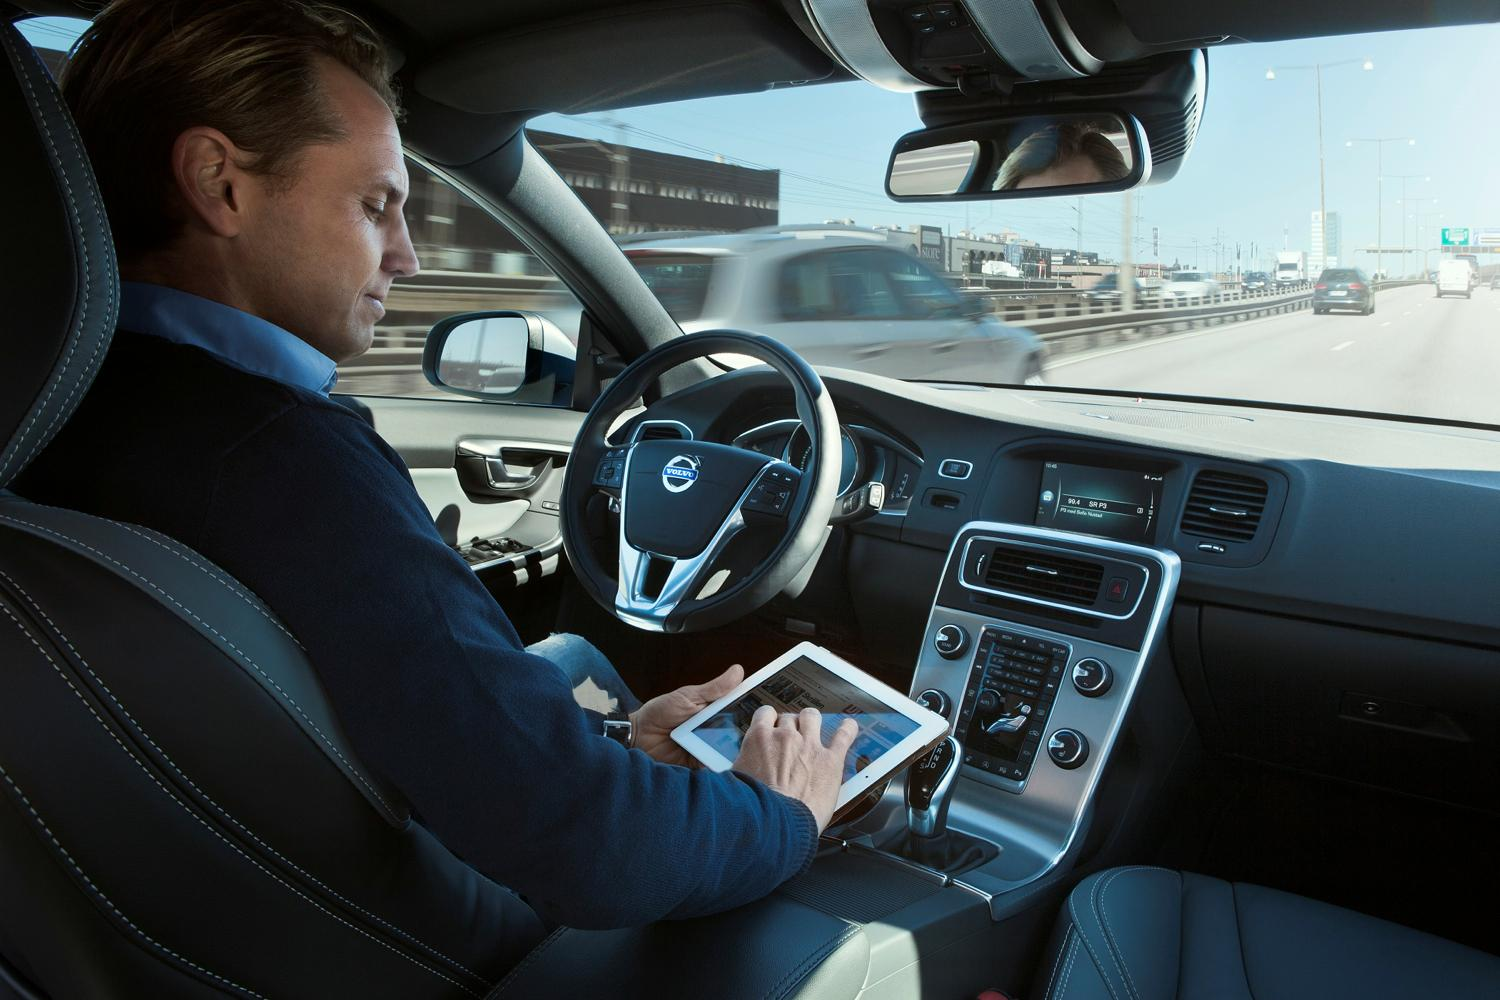 Understanding the Causes of Self-Driving Car Crashes